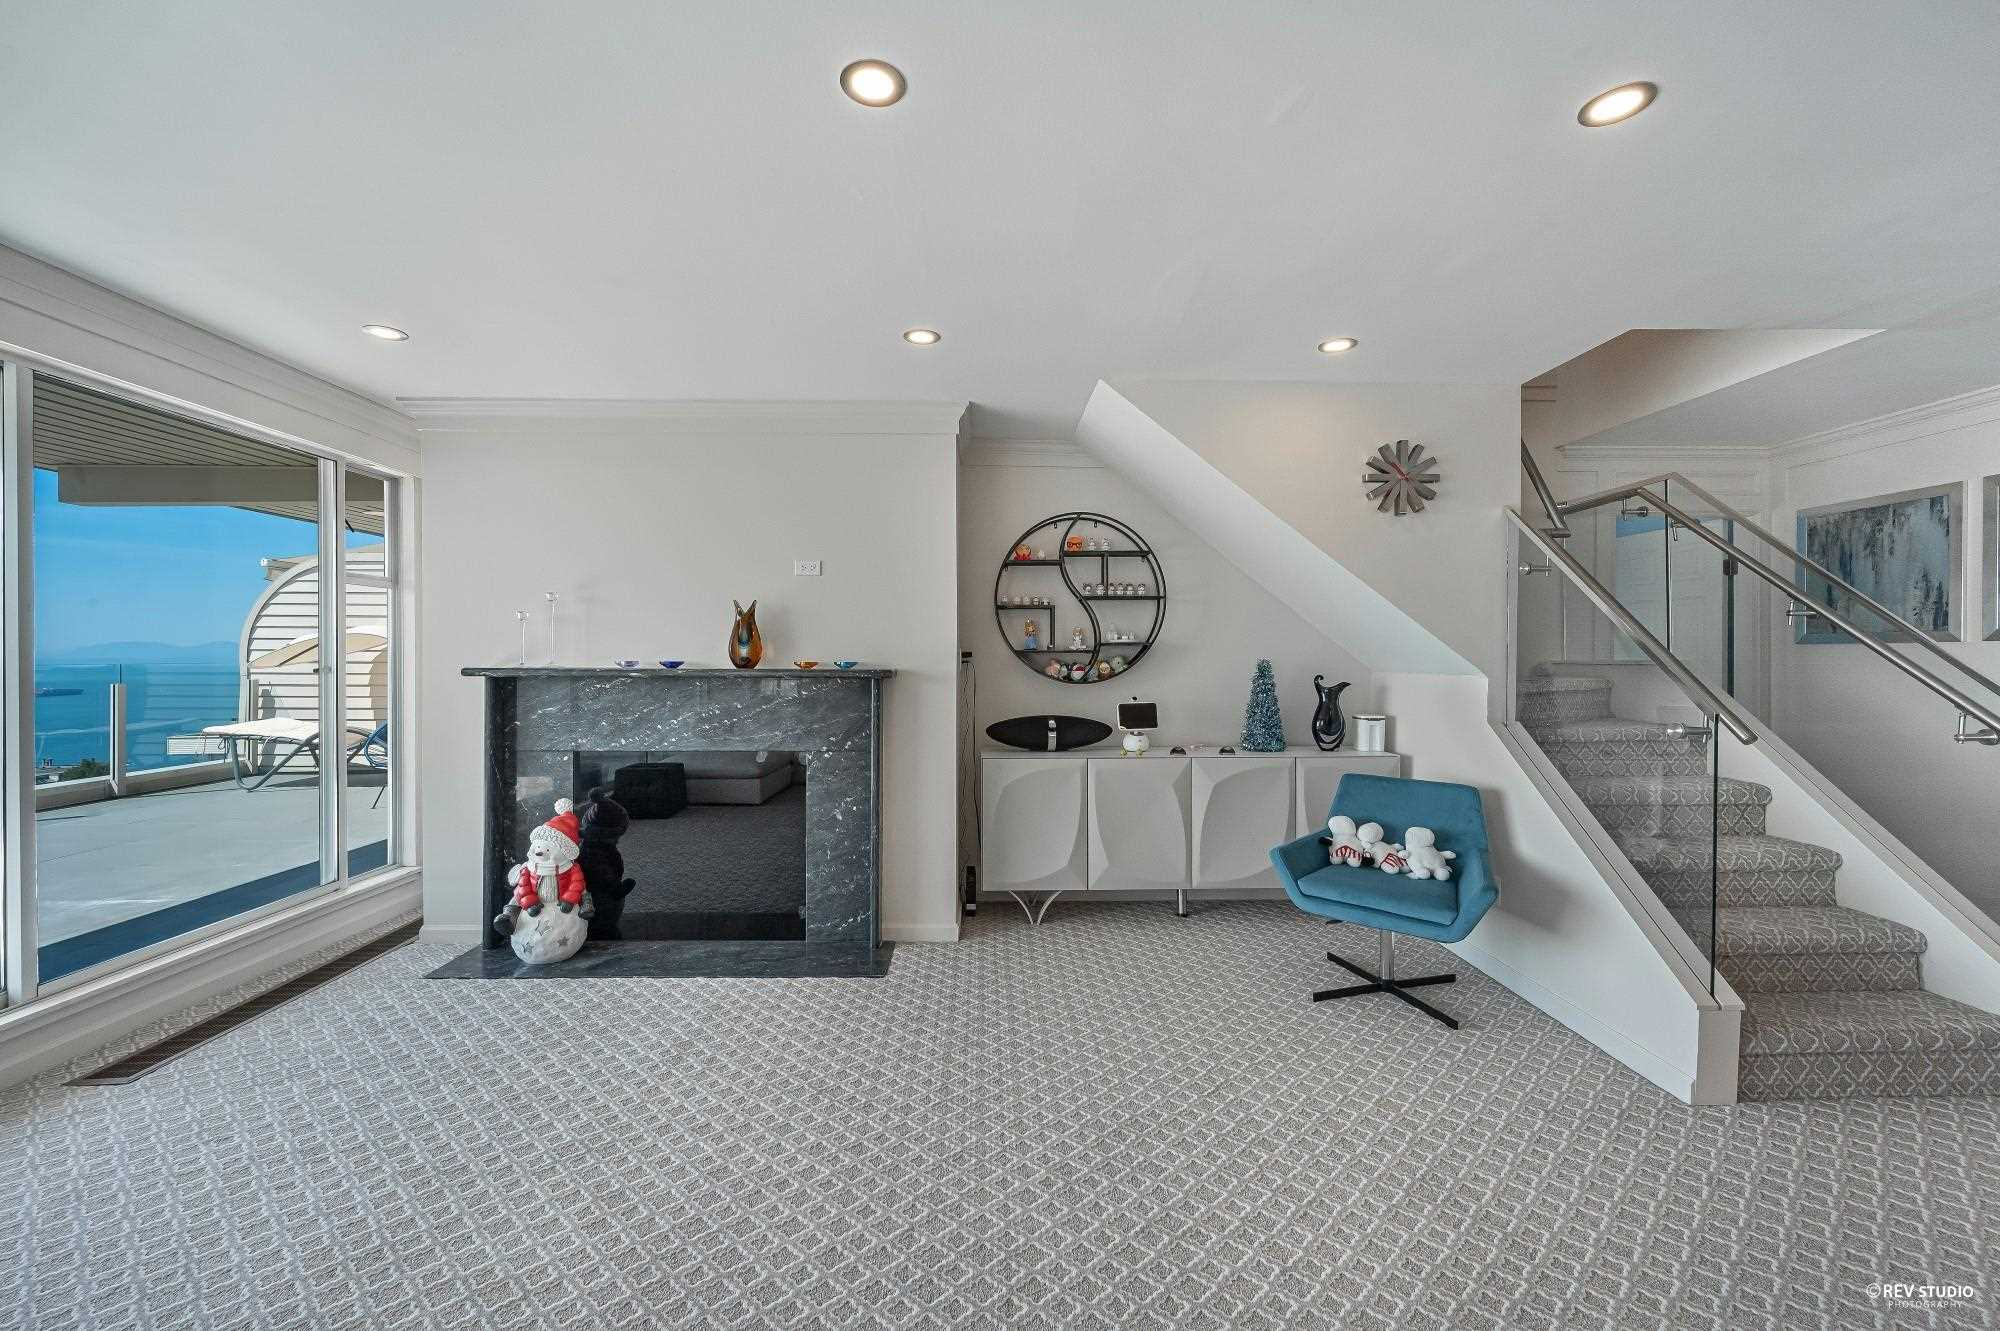 215 2274 FOLKESTONE WAY - Panorama Village Townhouse for sale, 3 Bedrooms (R2606049) - #25